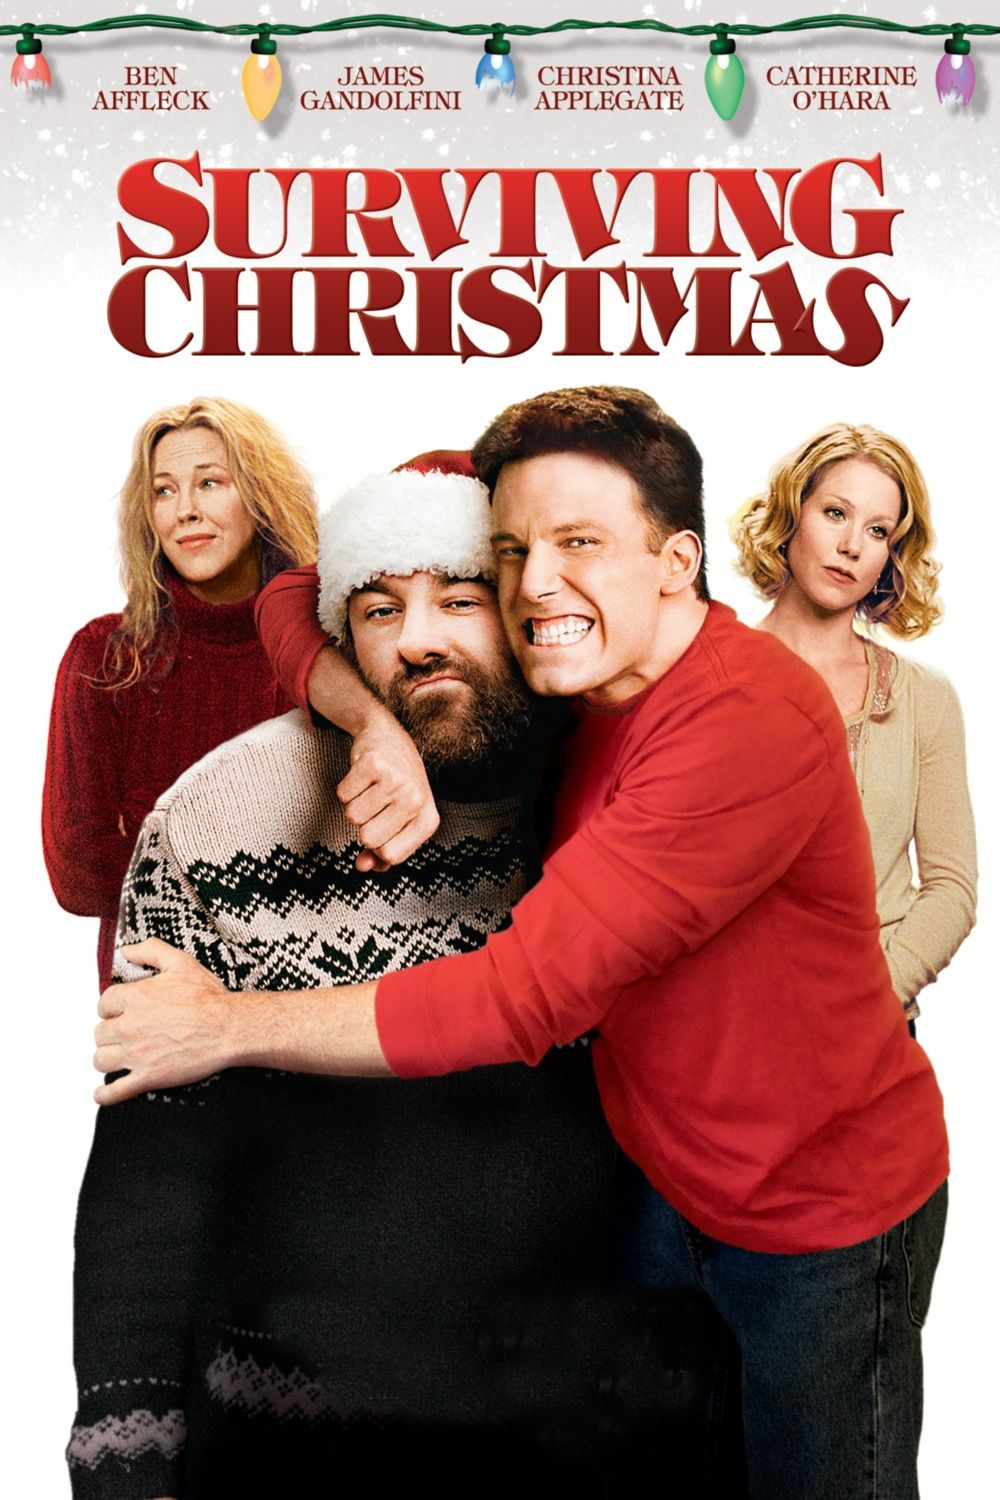 Um, great cast. And it's a holiday movie. Done and done